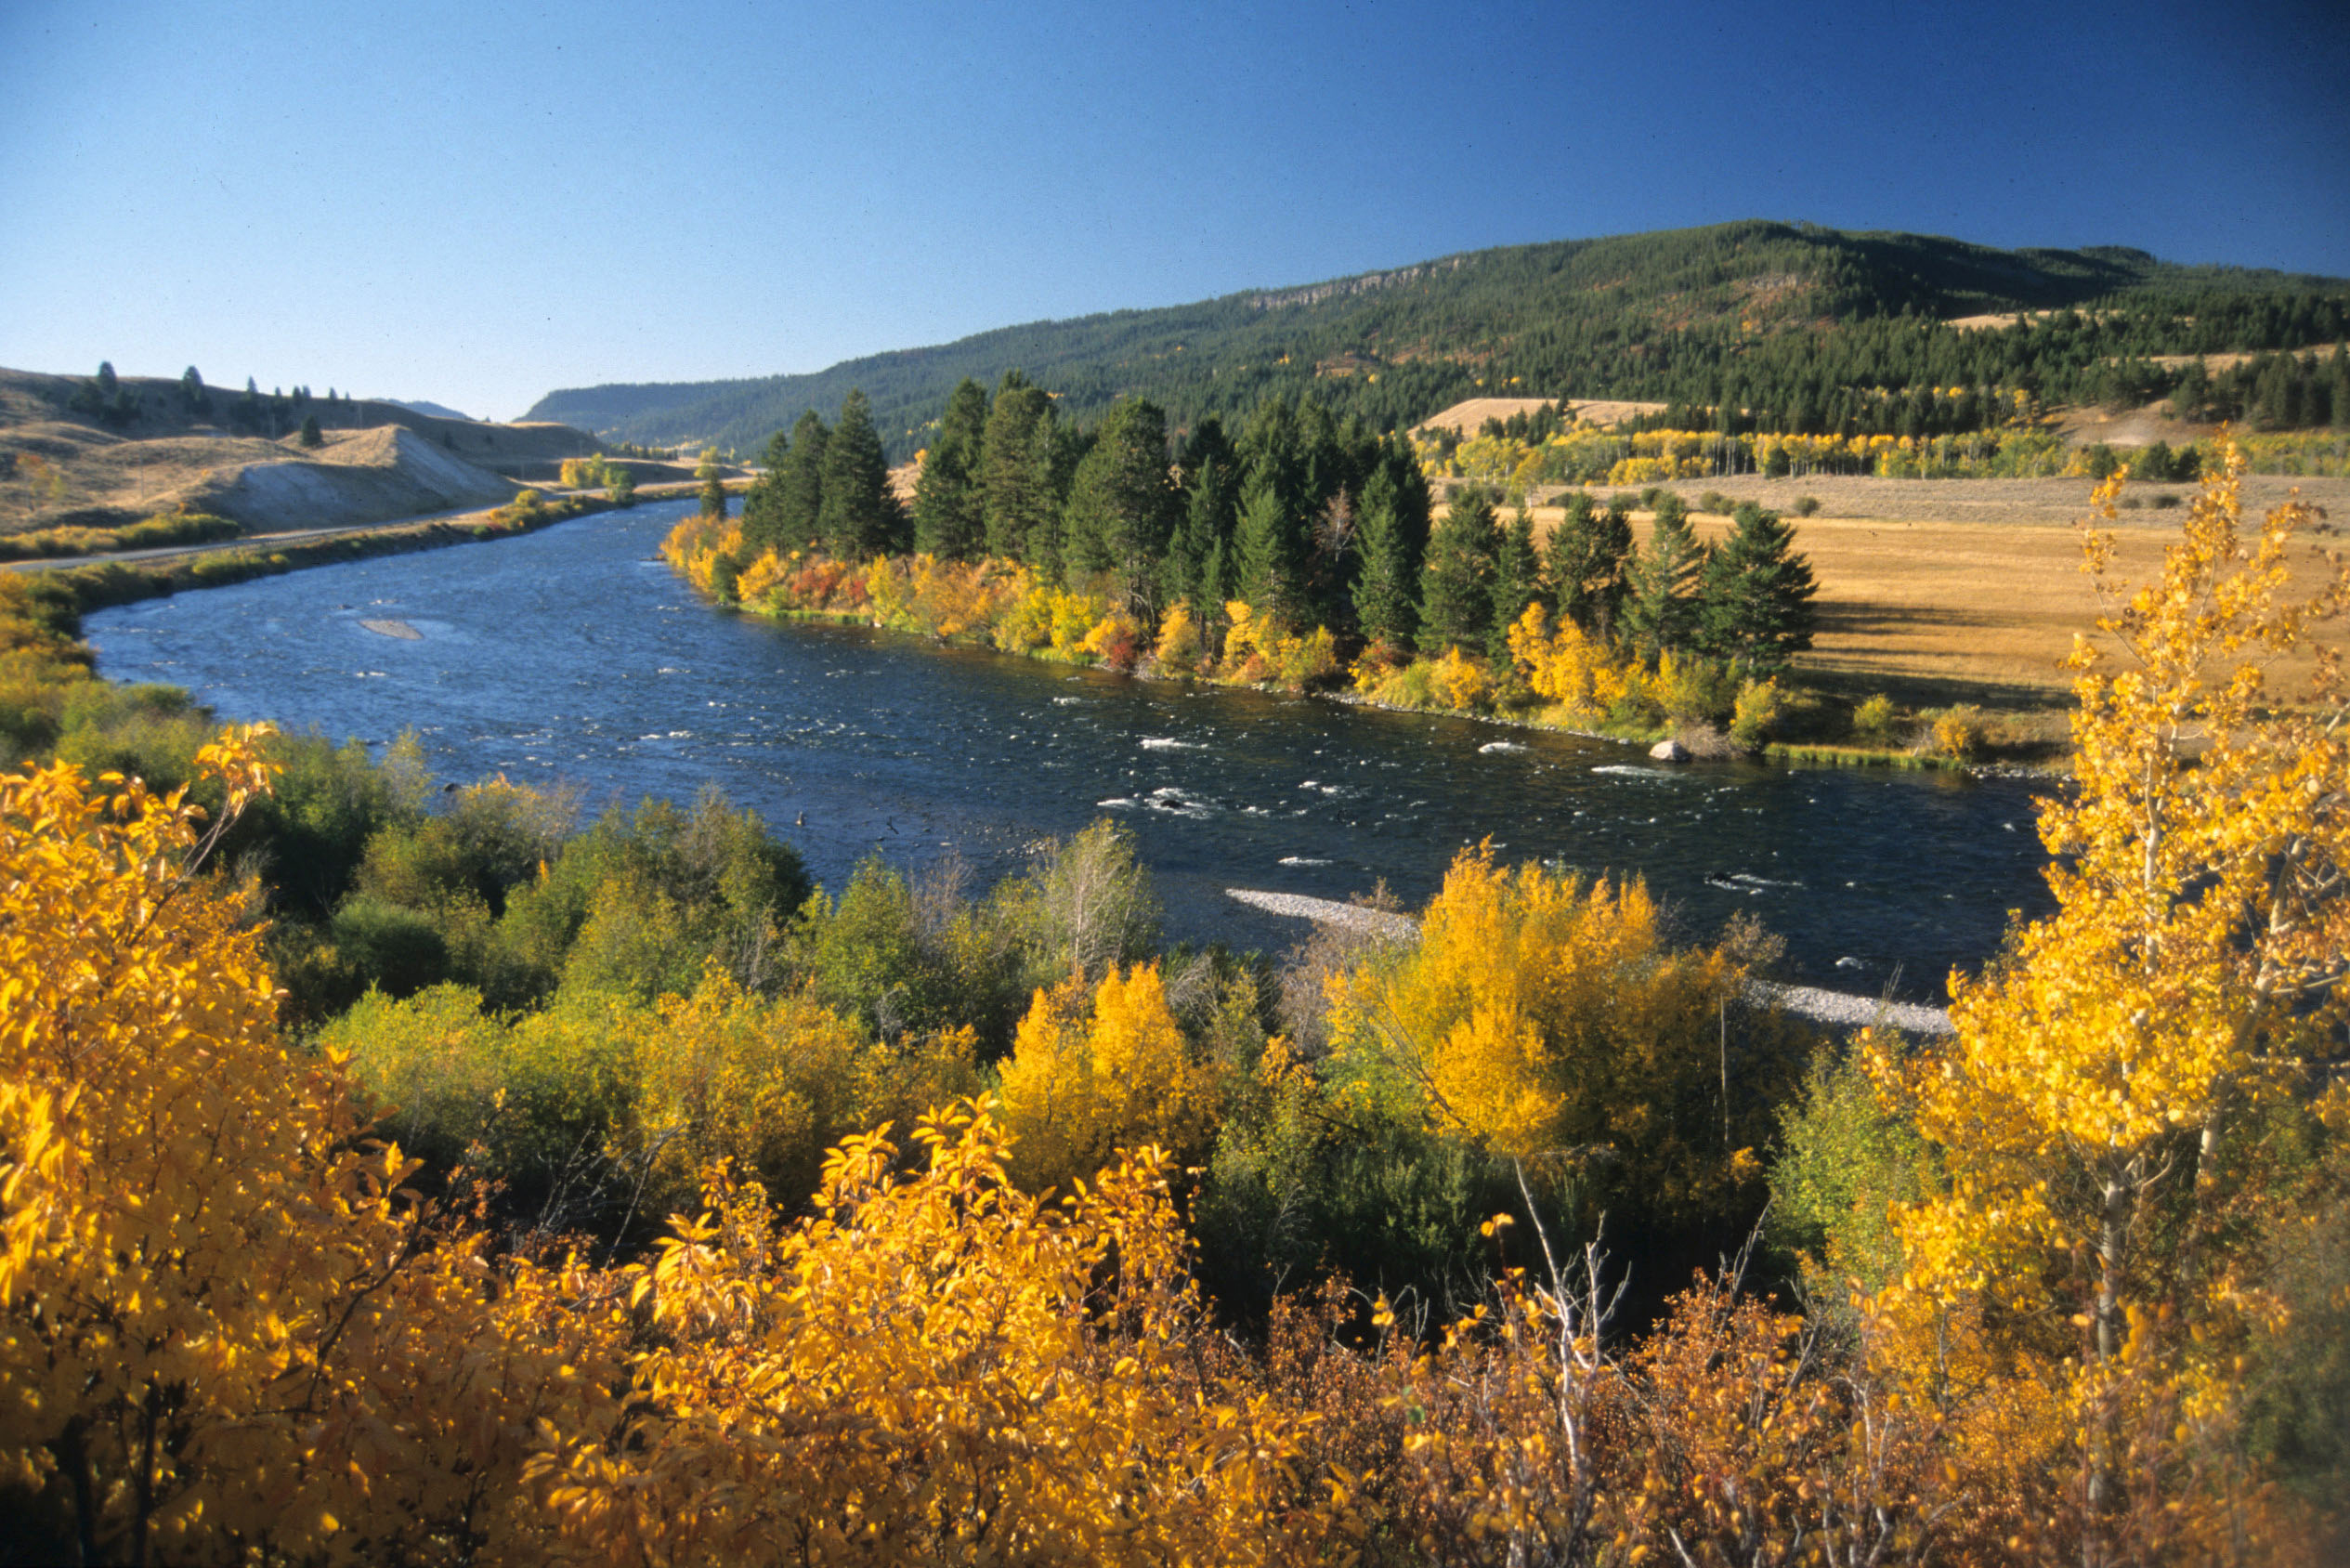 Photo: The Madison River flows past autumn foliage upstream from Ennis. (Photo by Rick and Susie Graetz)